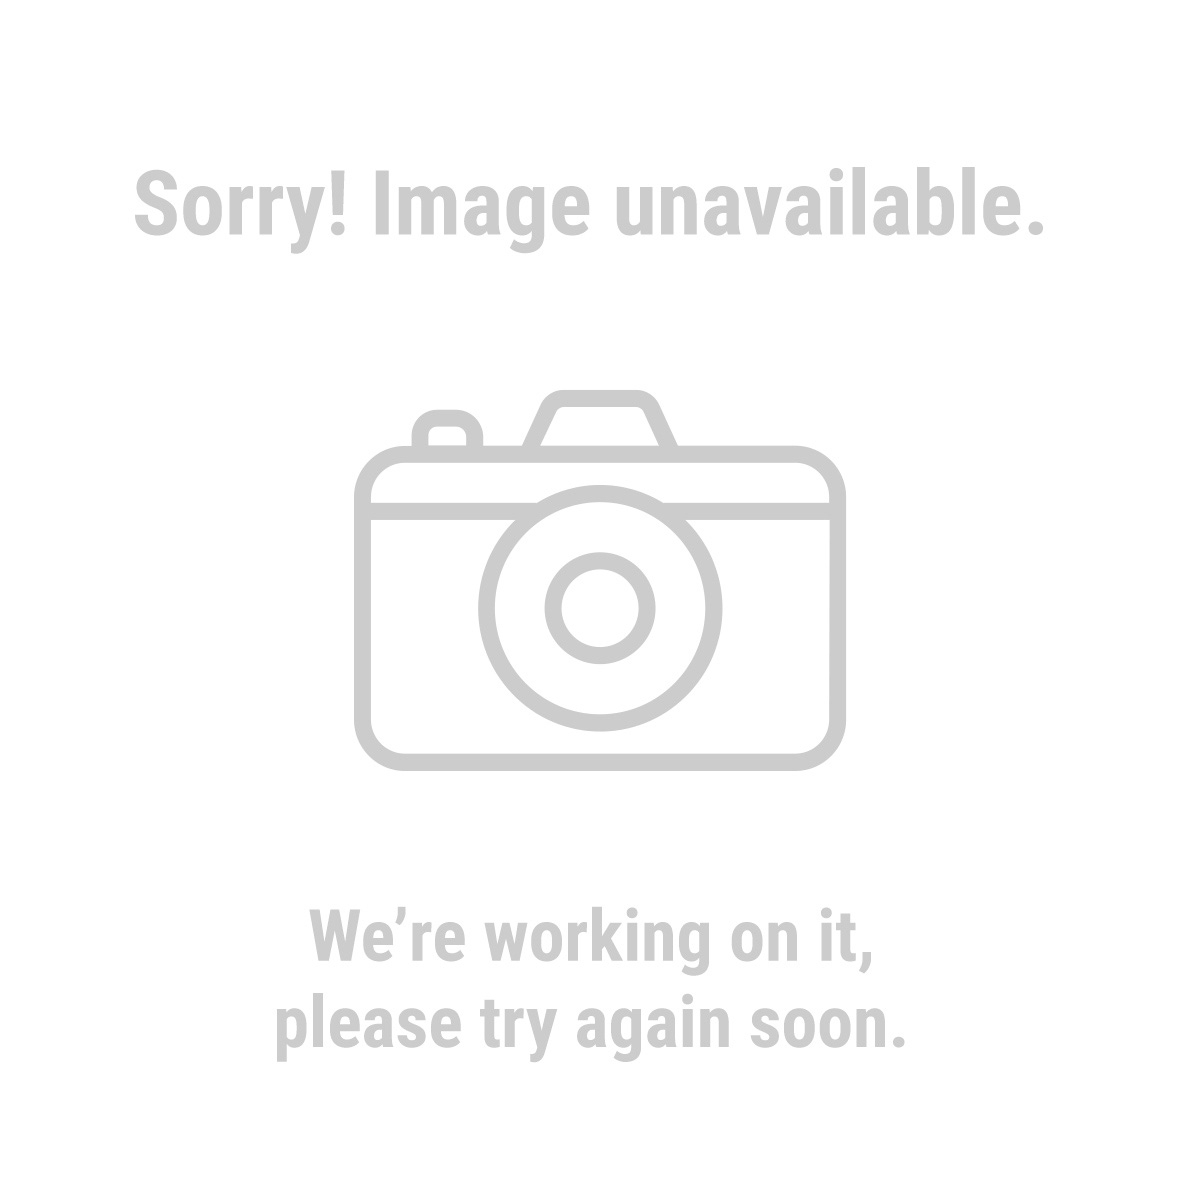 Pittsburgh® 67909 Piece 3/8 in. Drive SAE Impact Socket Set